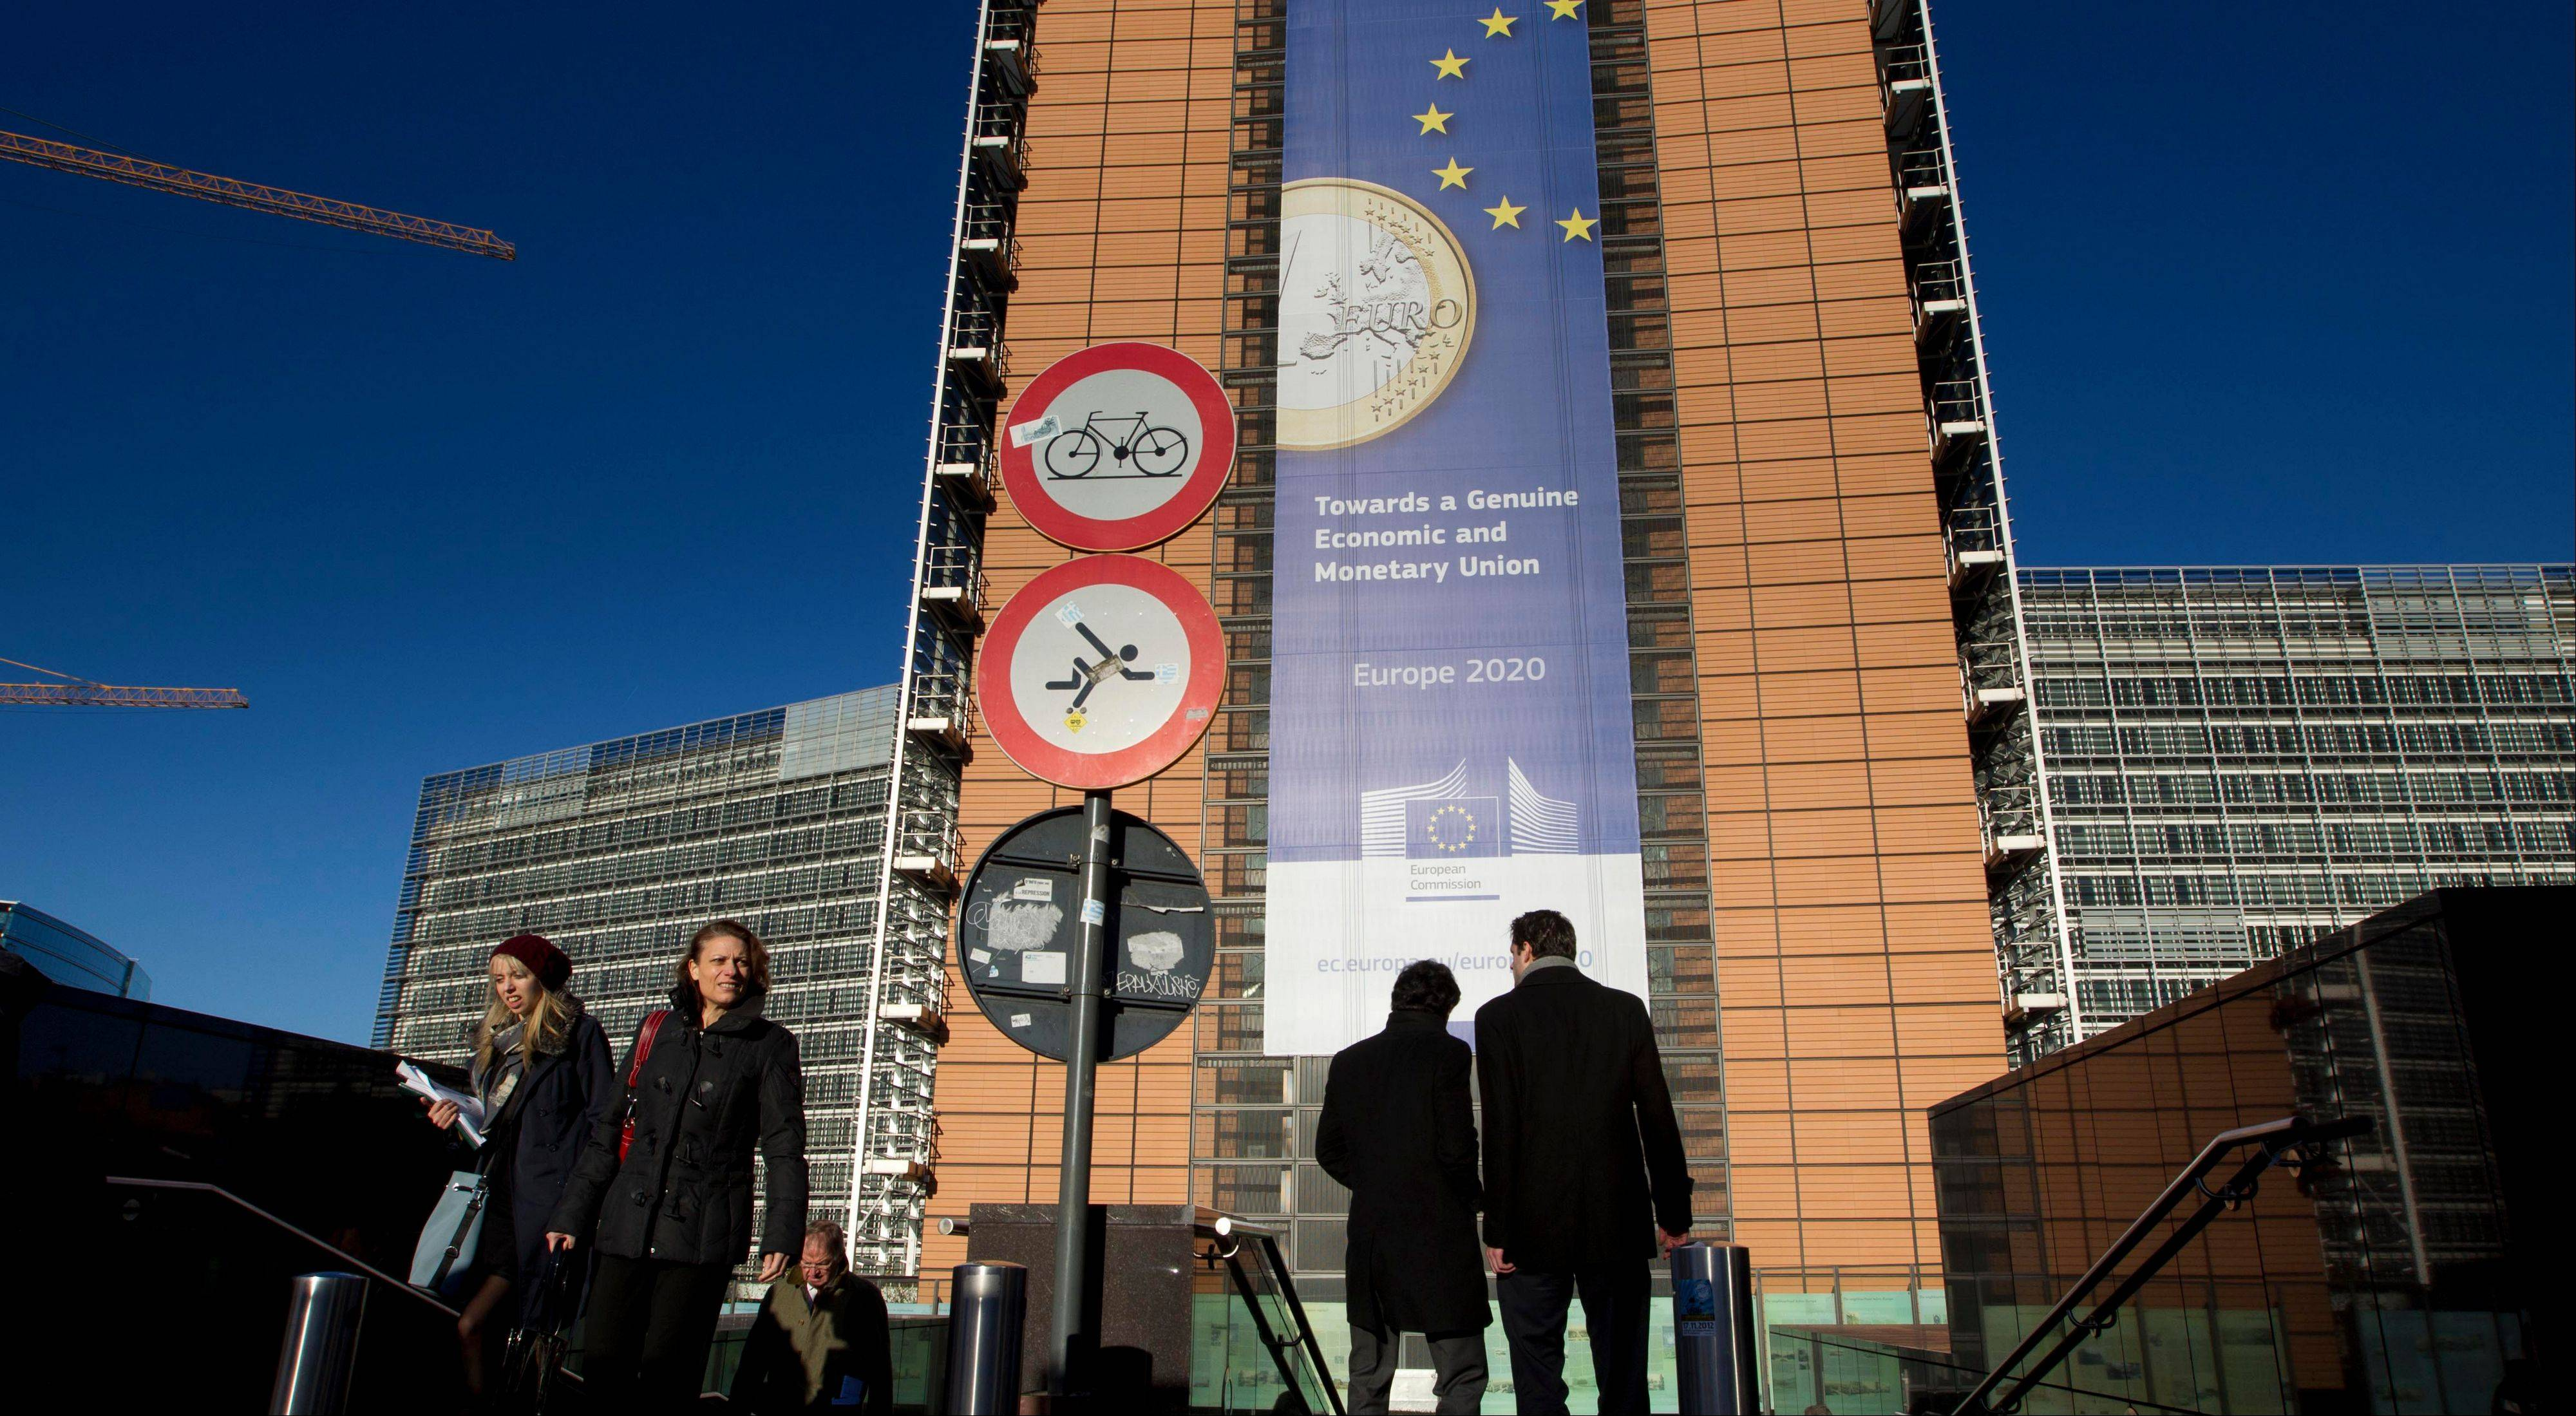 People walk in front of a giant banner for the euro currency outside of an EU summit in Brussels on Thursday, Nov. 22, 2012. Leaders from around Europe are arriving in Brussels Thursday for what promises to be a turbulent summit on the budget for the 27-country European Union. And for once, Britain will be at the heart of the debate.